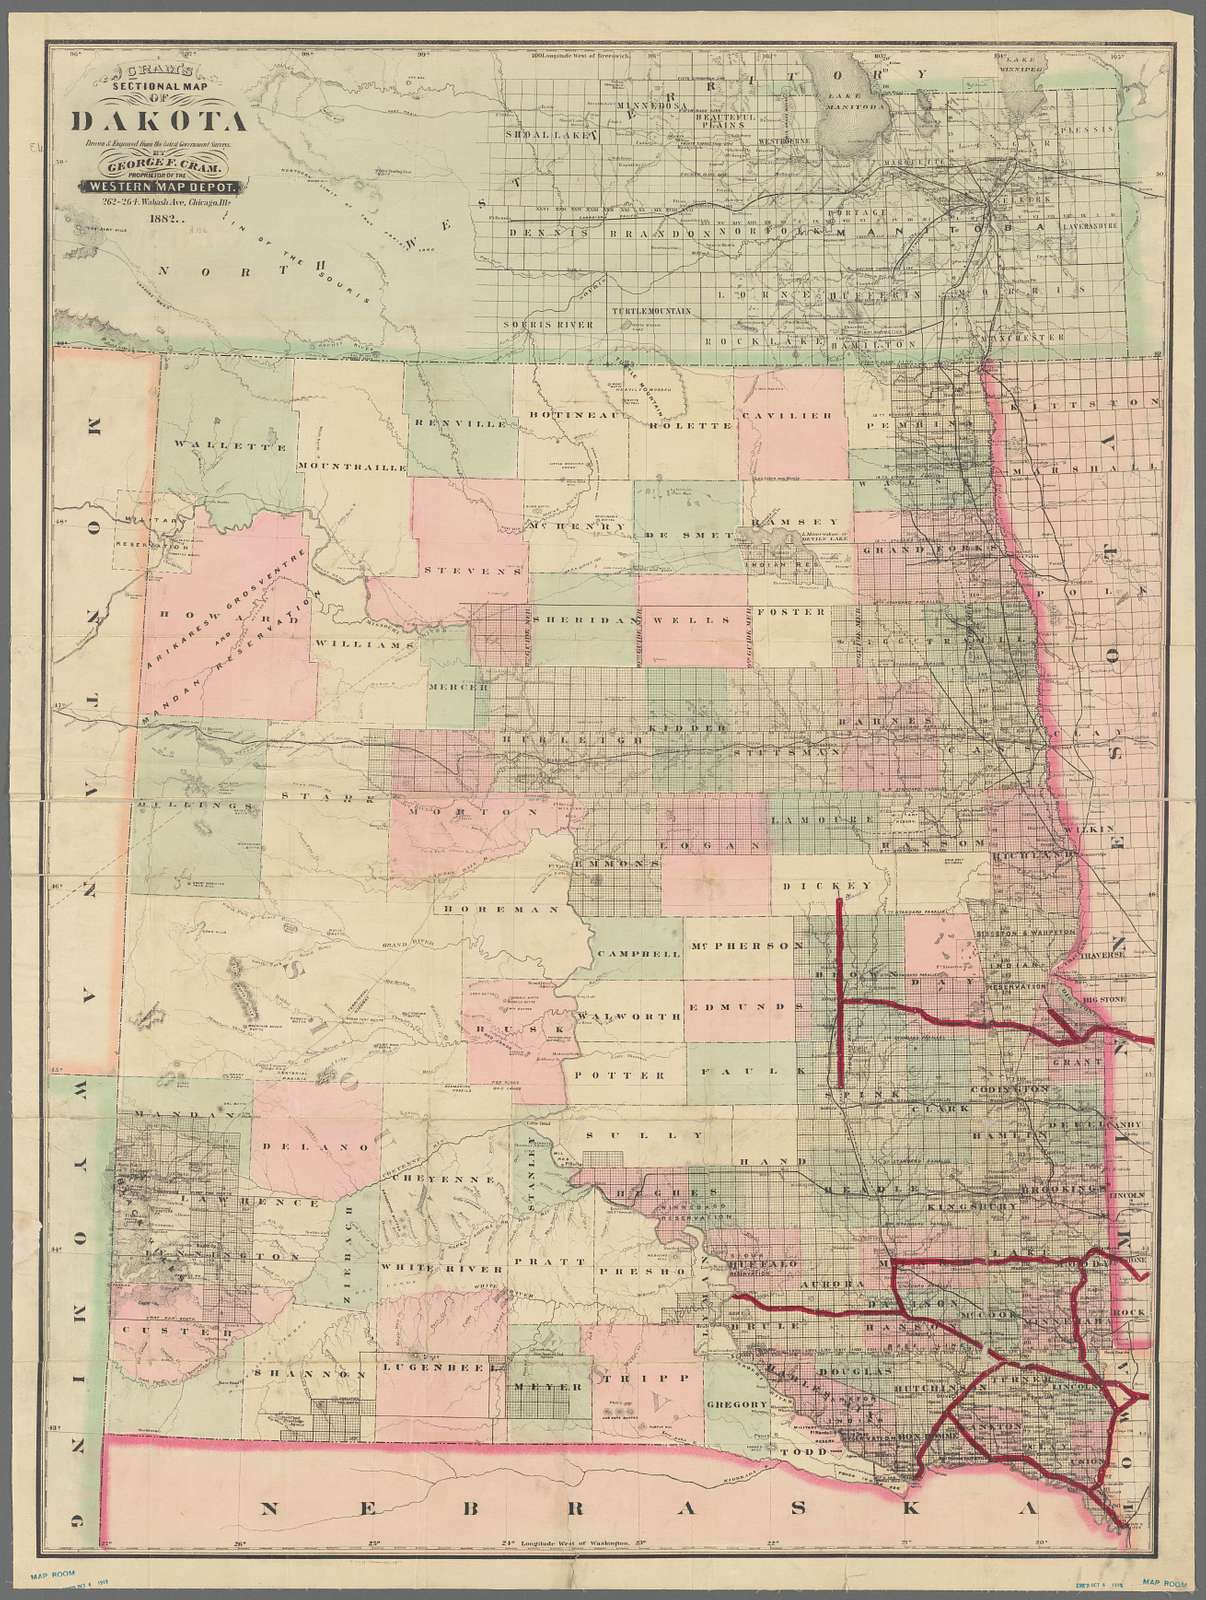 Cram's sectional map of Dakota